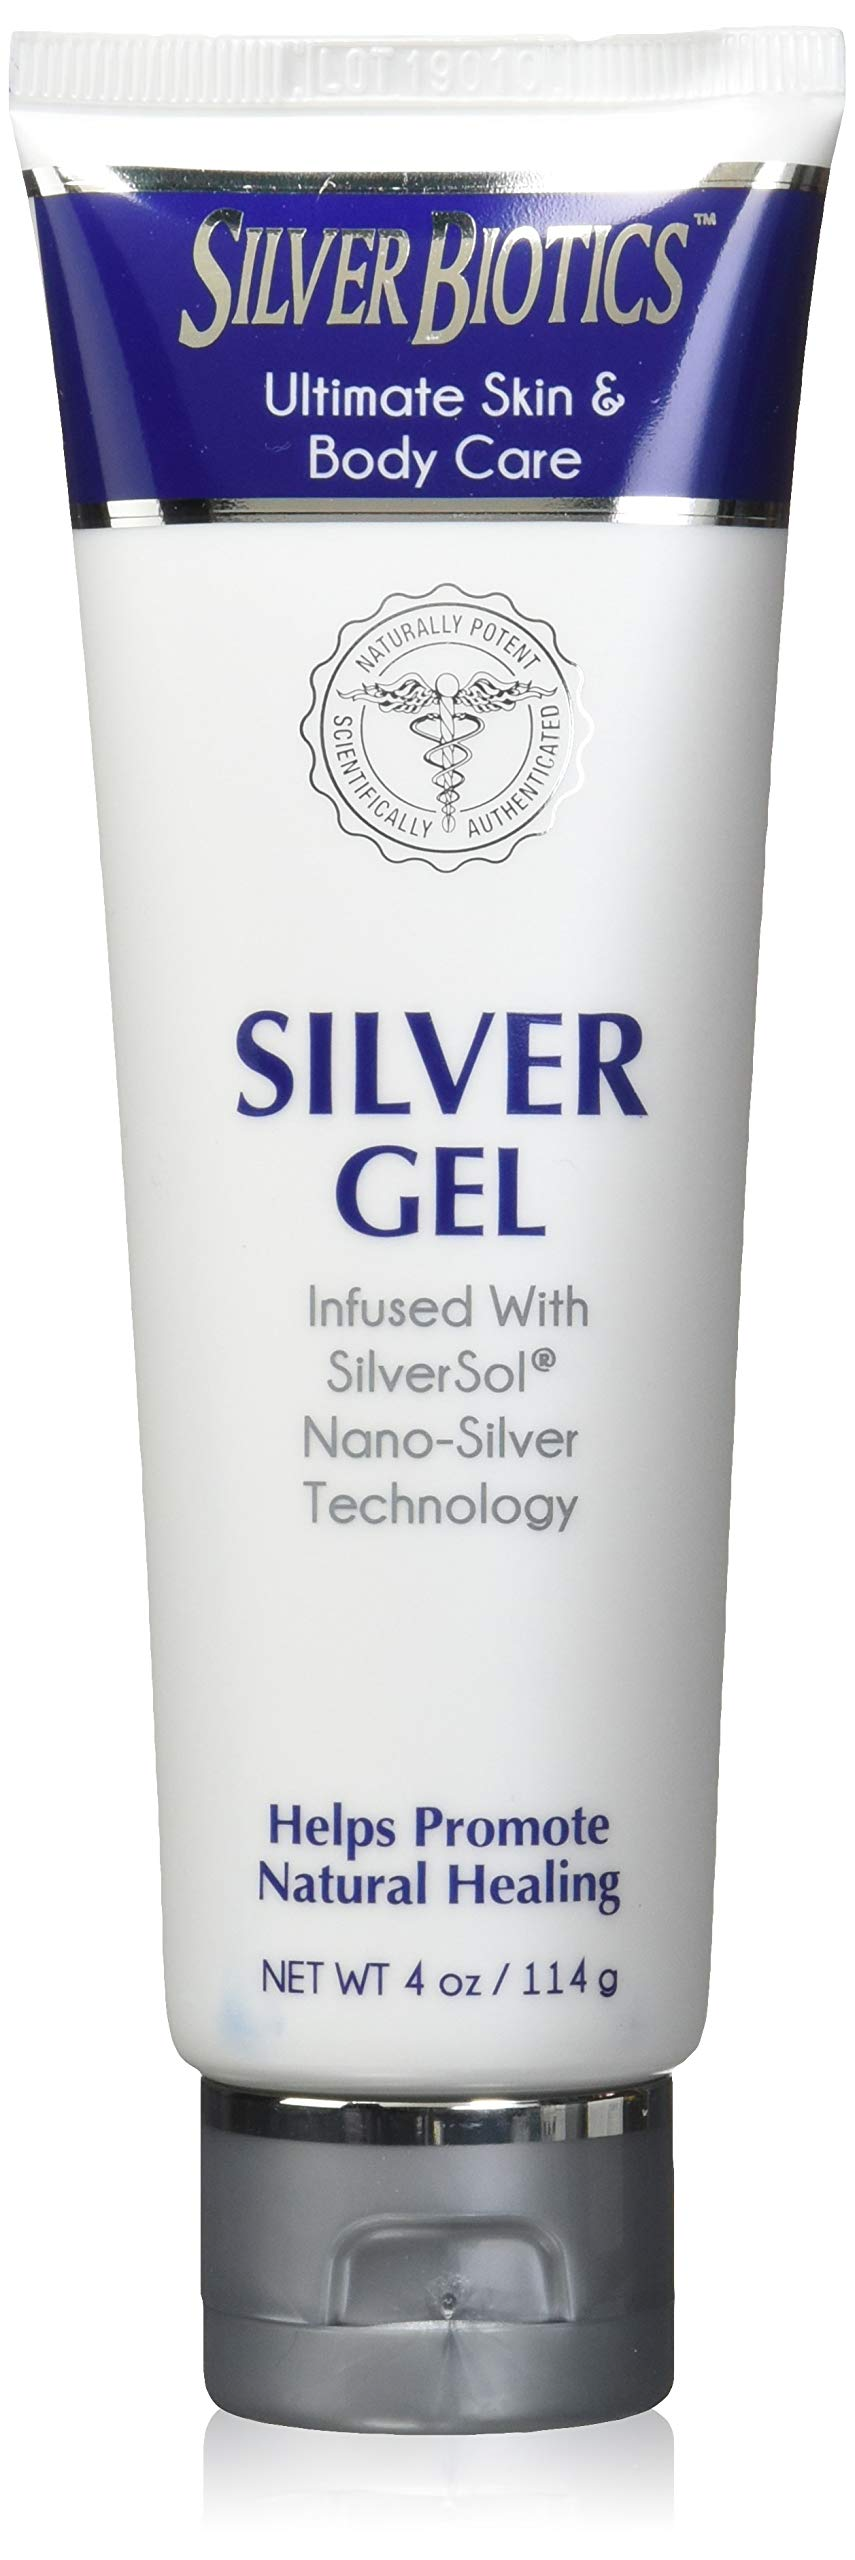 American Biotech Labs Silver Biotics Silver Gel Infused w/SilverSol Nano-Silver Technology 4oz, Pack of 2